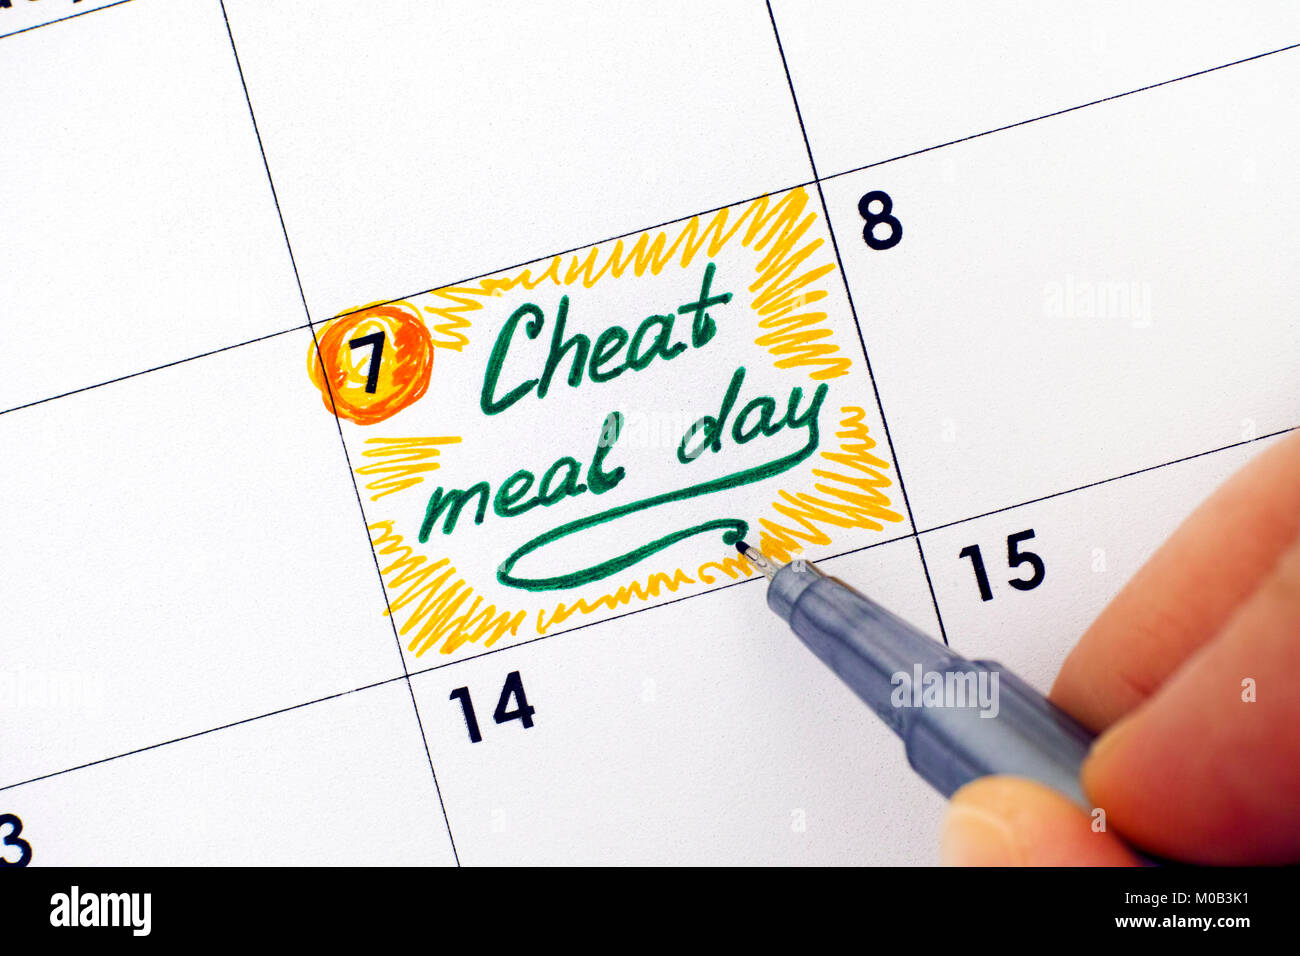 Woman hand with pen writing reminder Cheat Meal Day in calendar. Close-up. - Stock Image